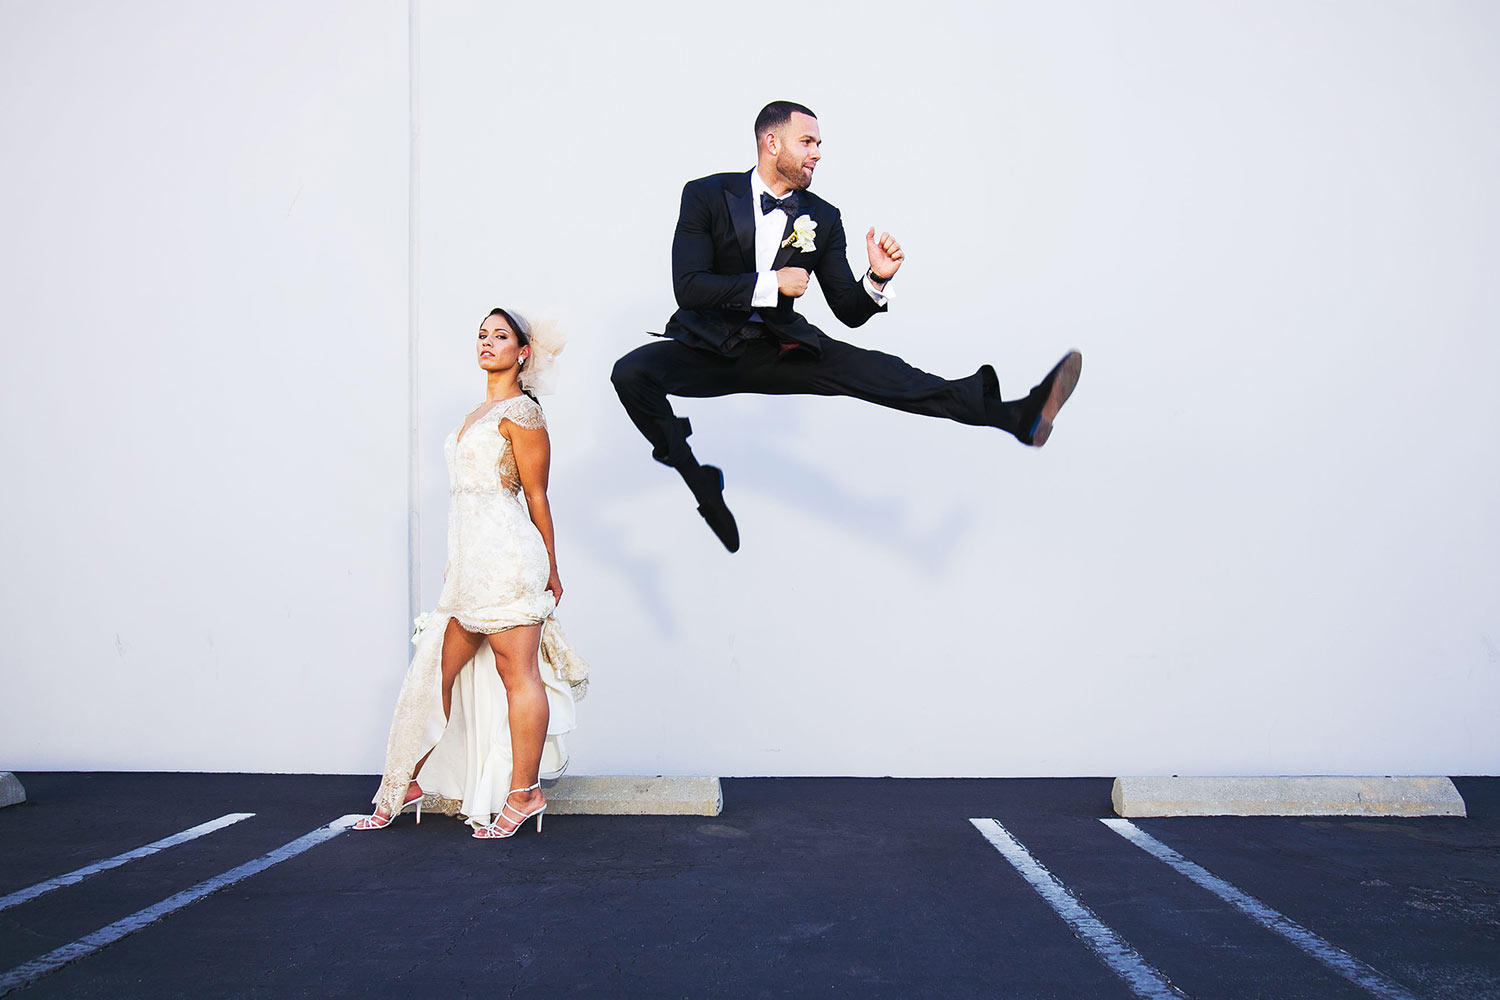 Great idea for bride and groom photo - jumping groom